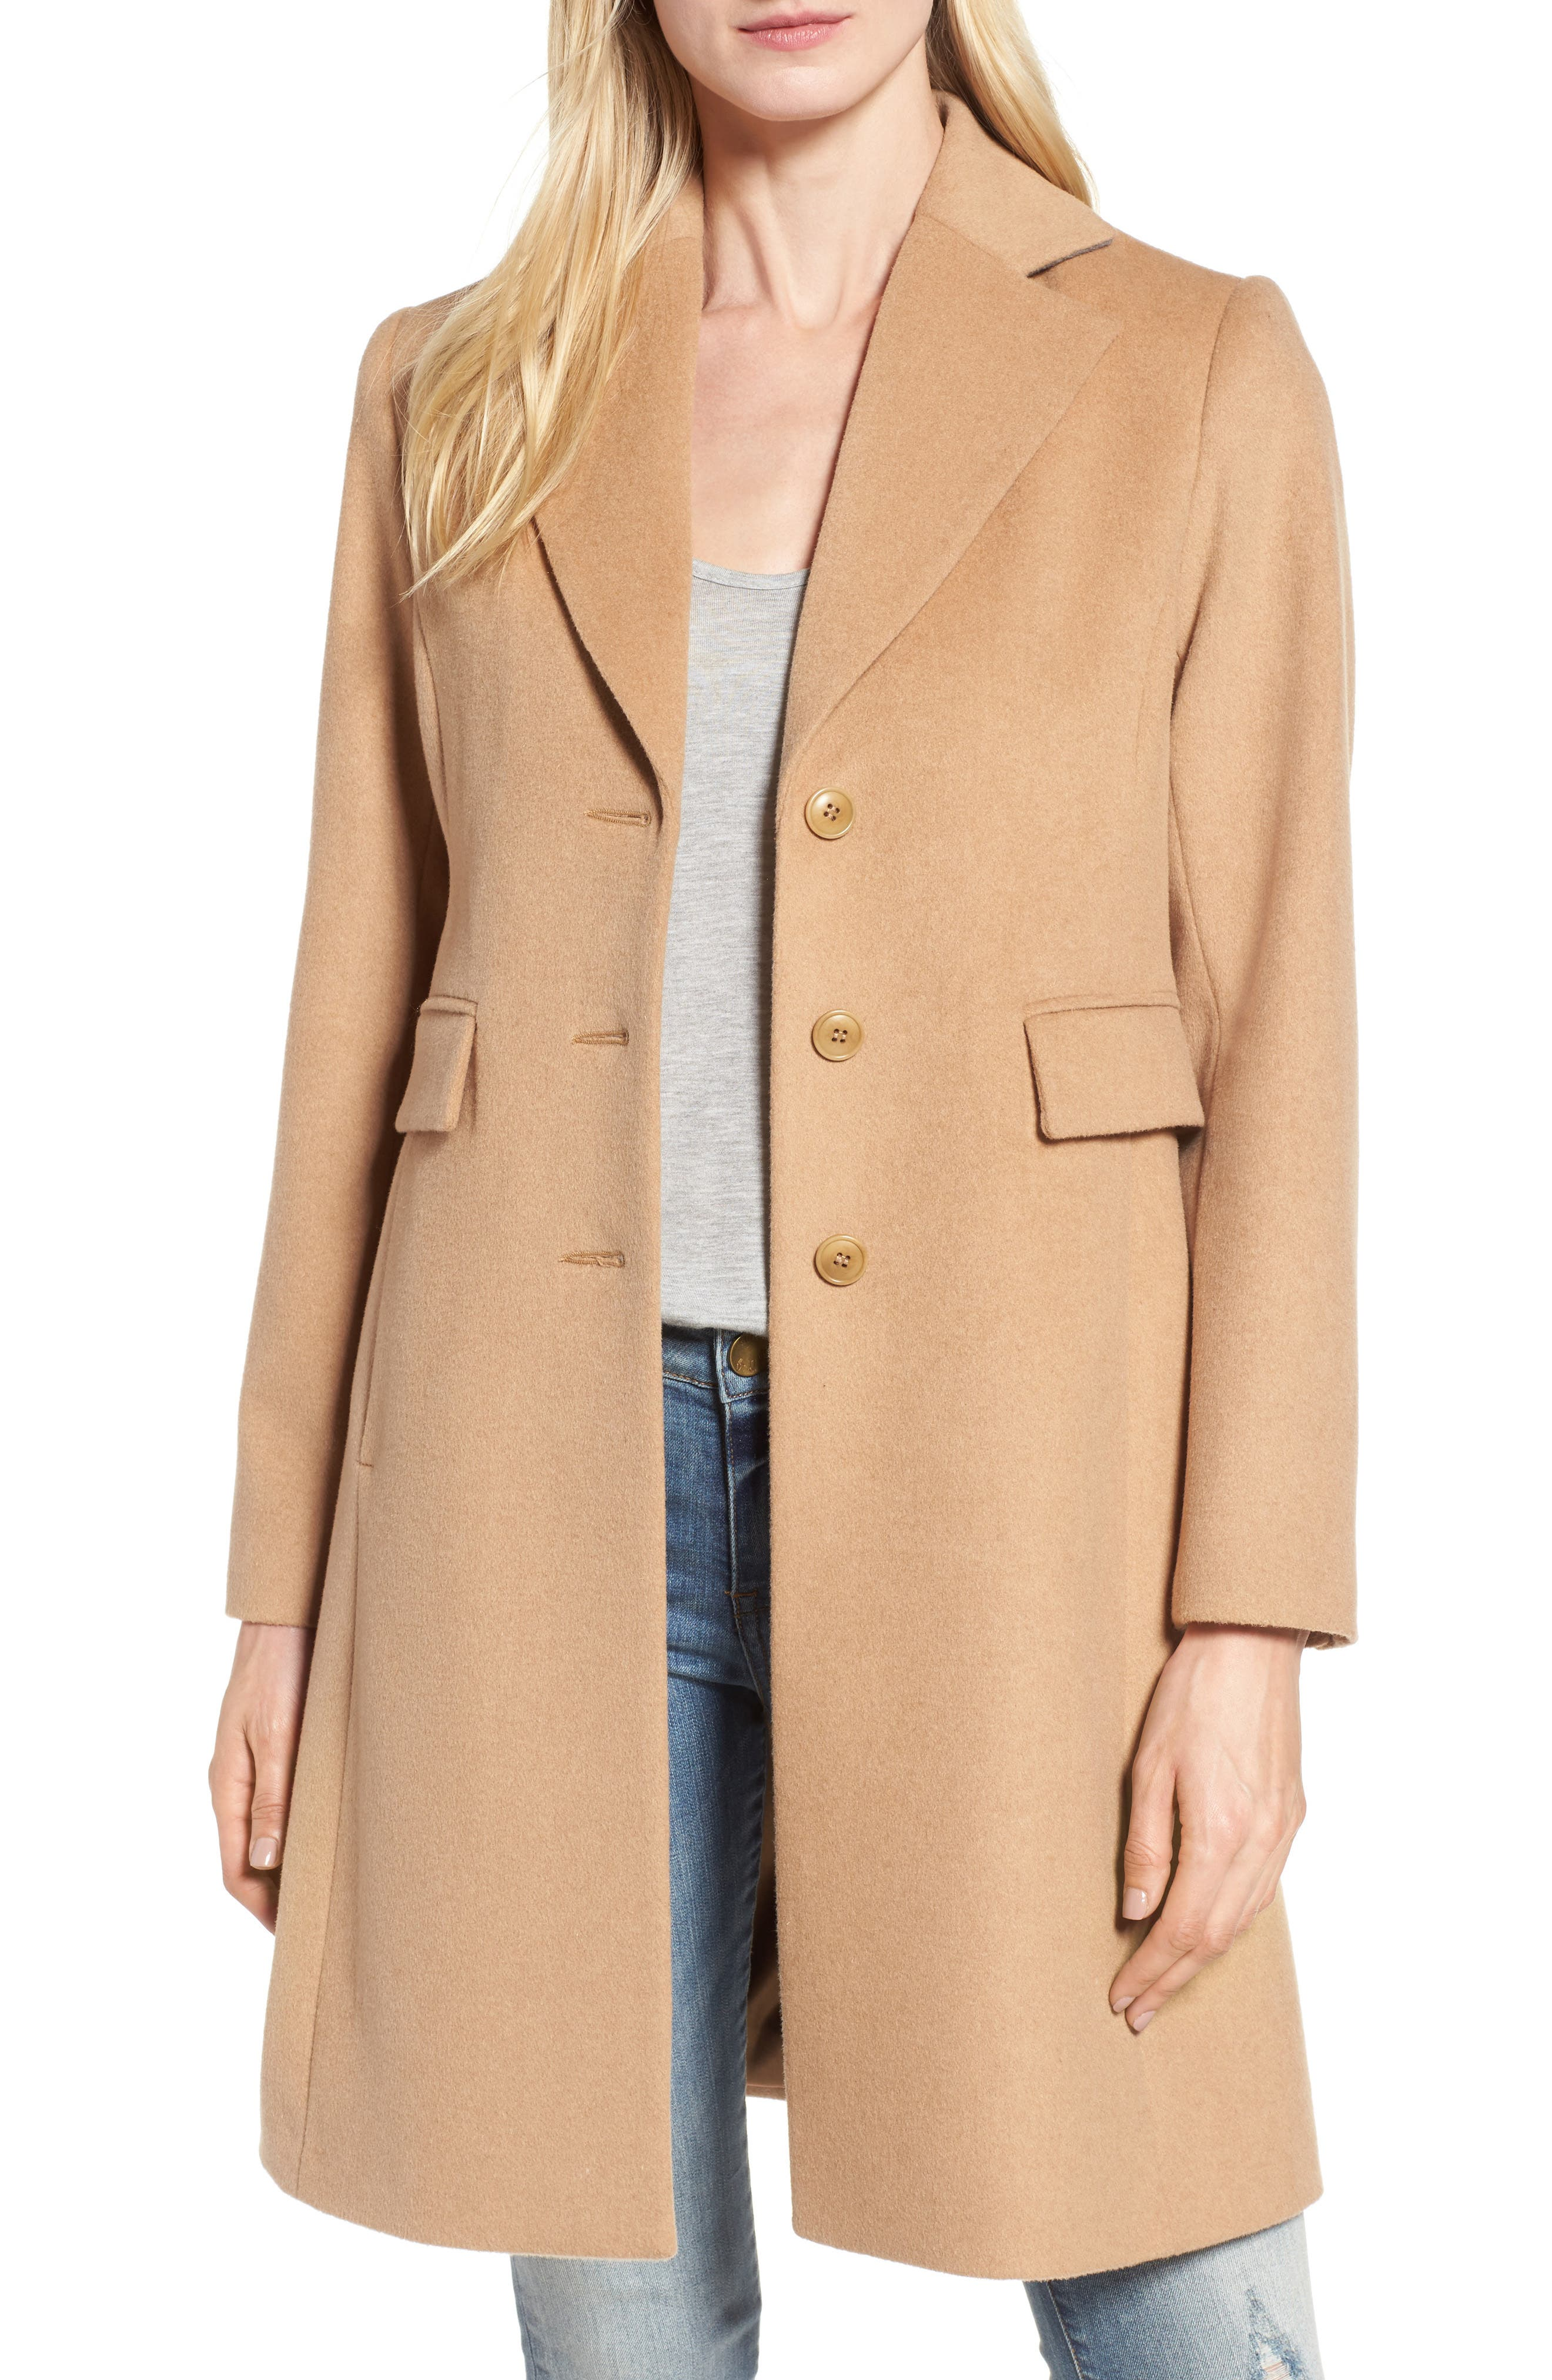 Kristen Blake Walking Coat (Regular & Petite)